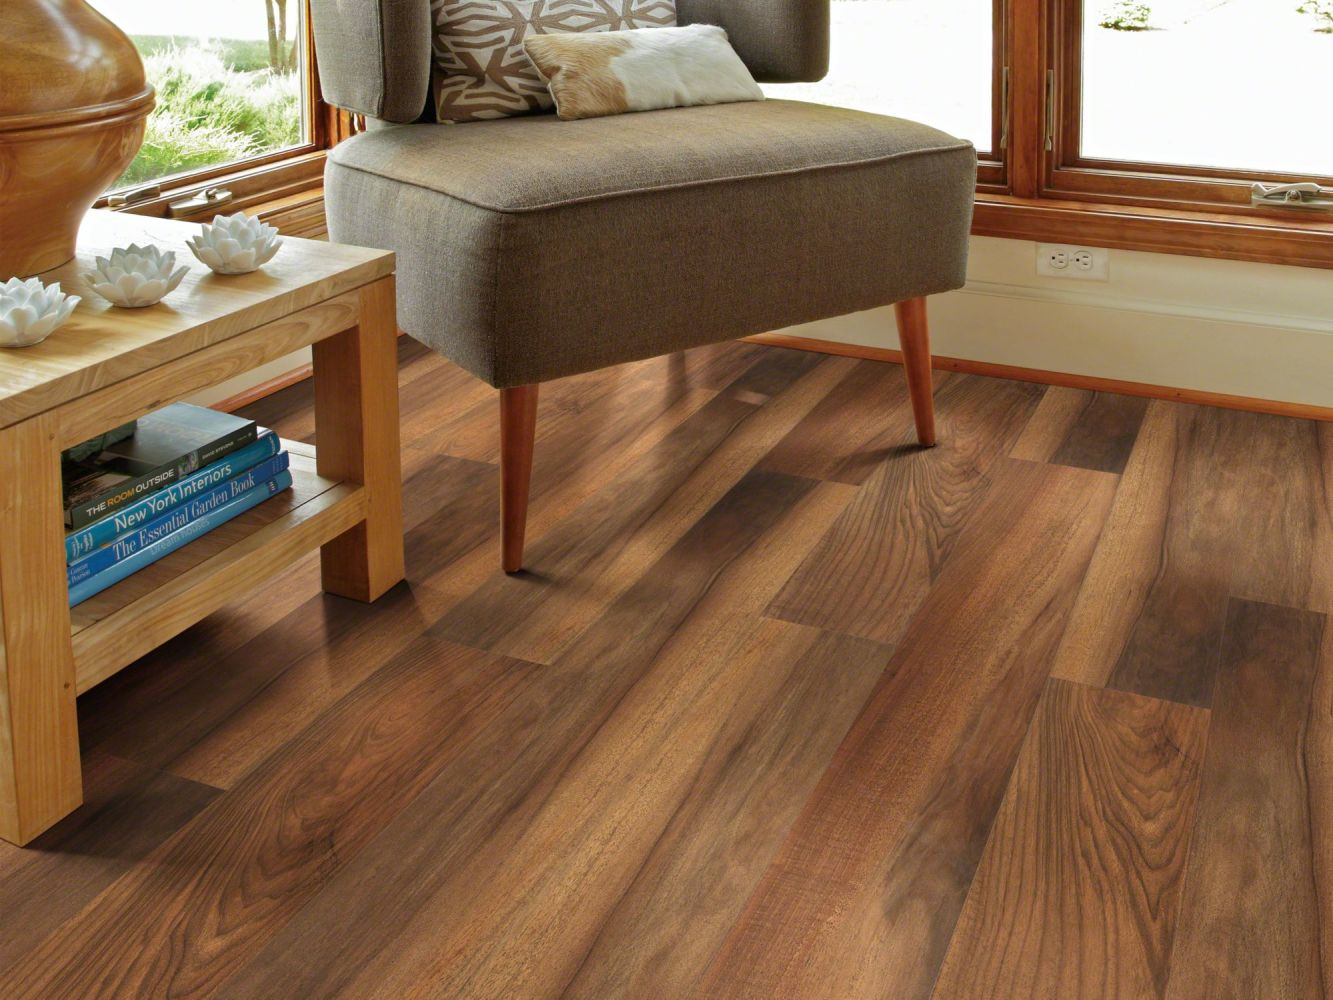 Shaw Floors Vinyl Residential Endura 512c Plus Amber Oak 00820_0736V